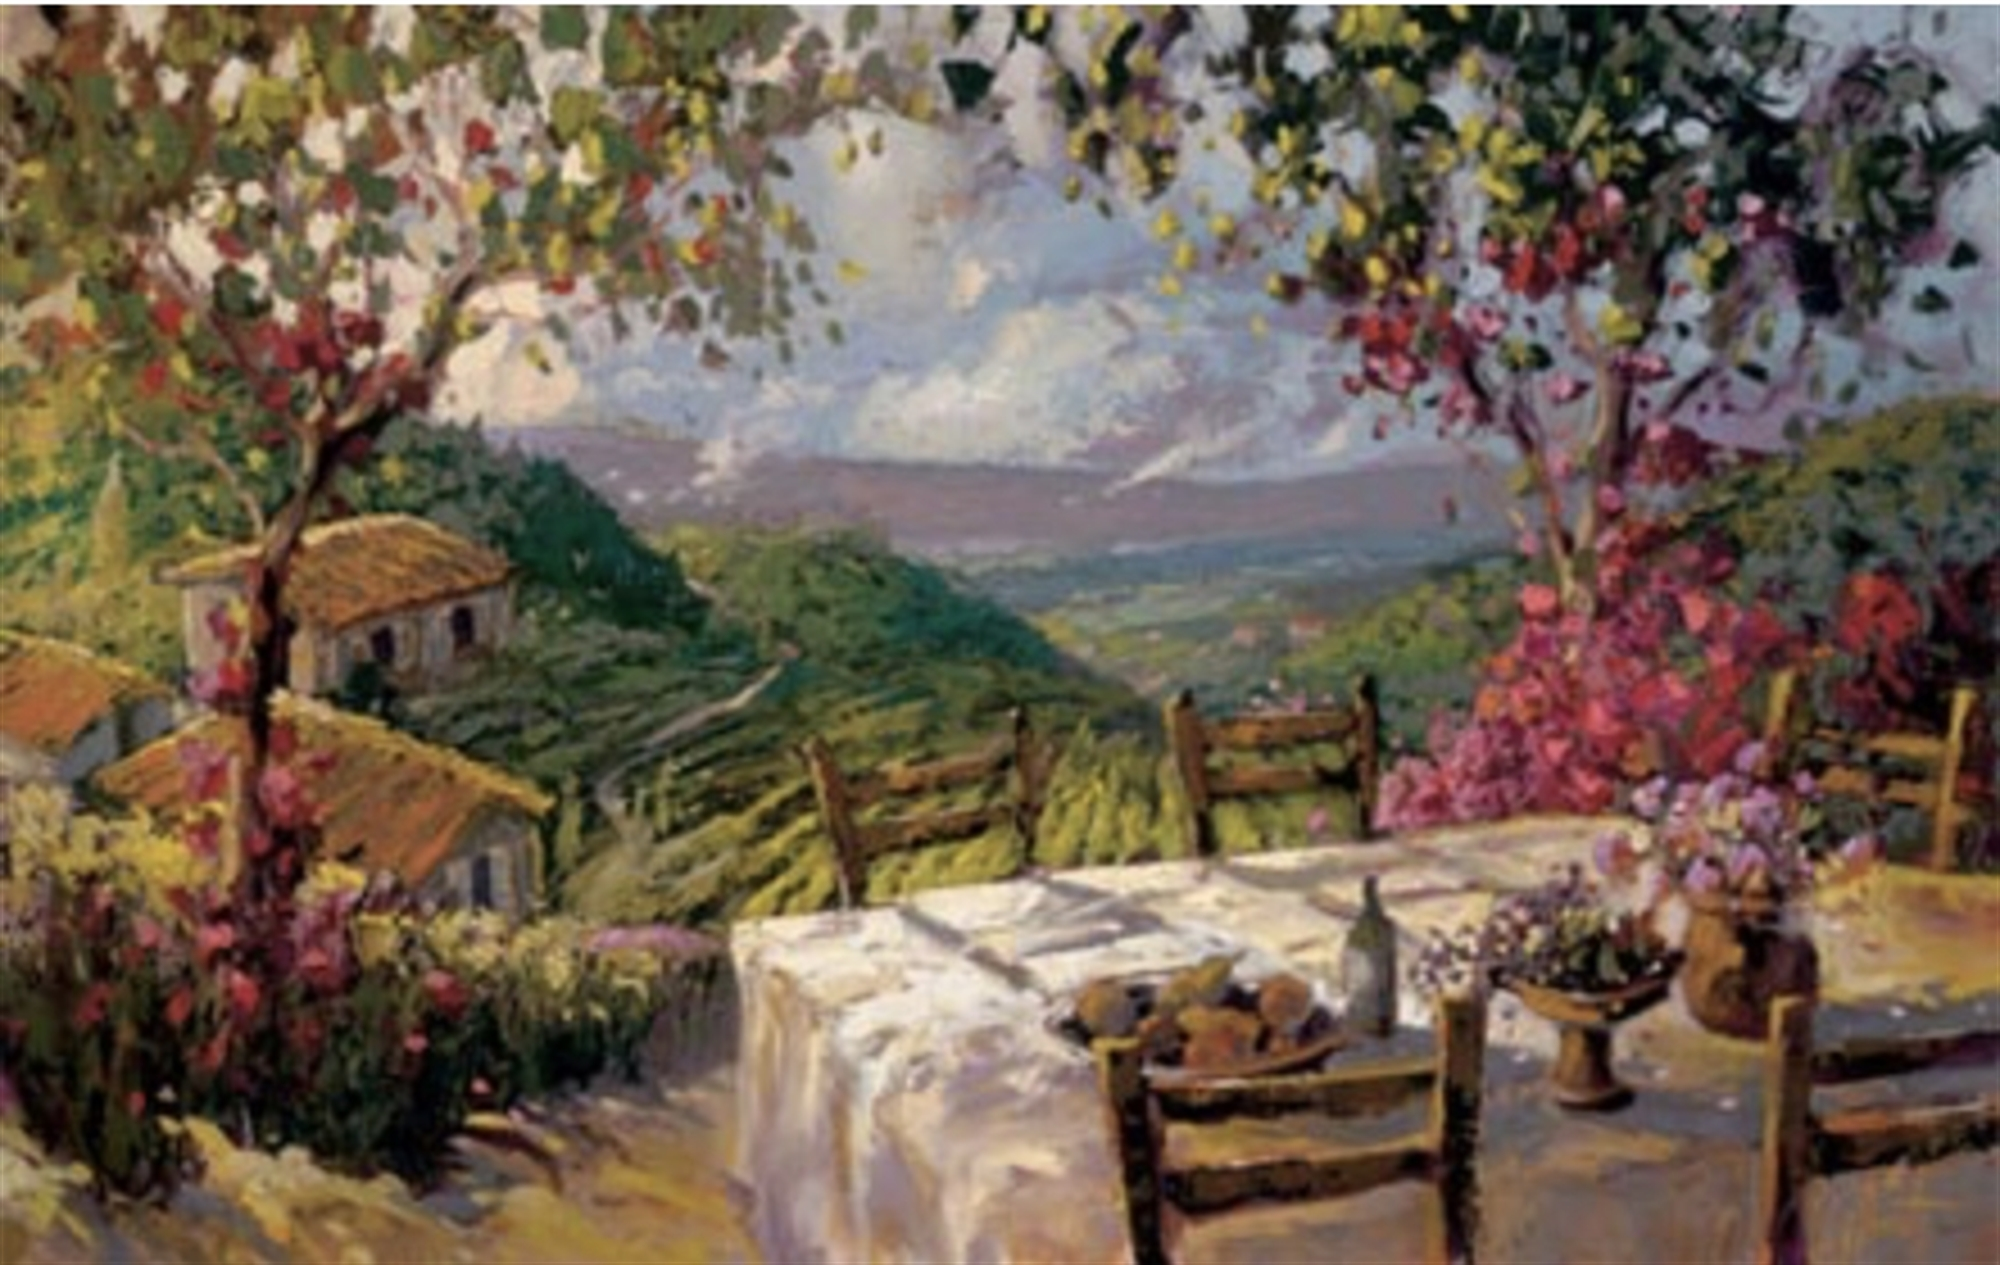 Hills of Tuscany by Steven Quartly